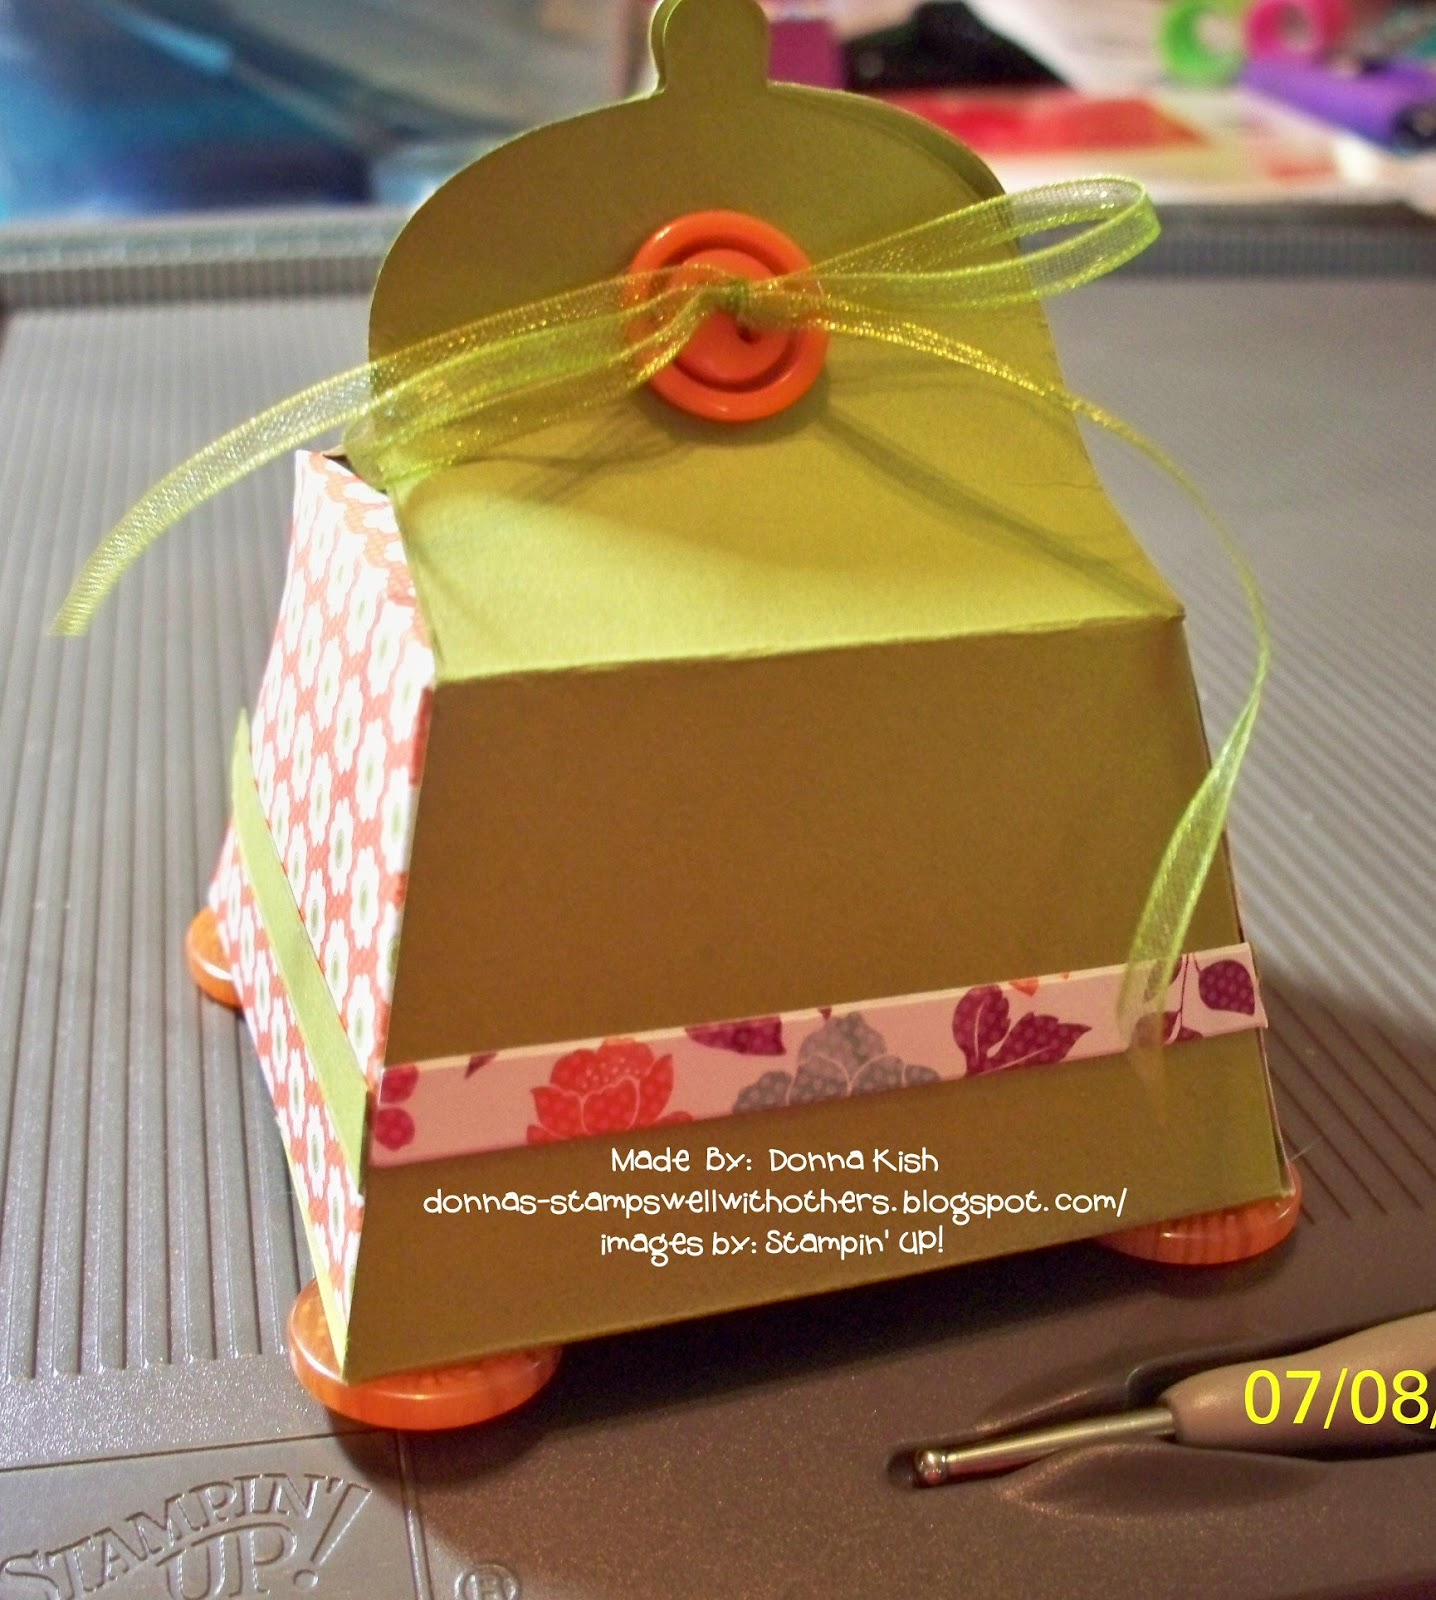 Stamps Well With Others: Petite Purse Square Box